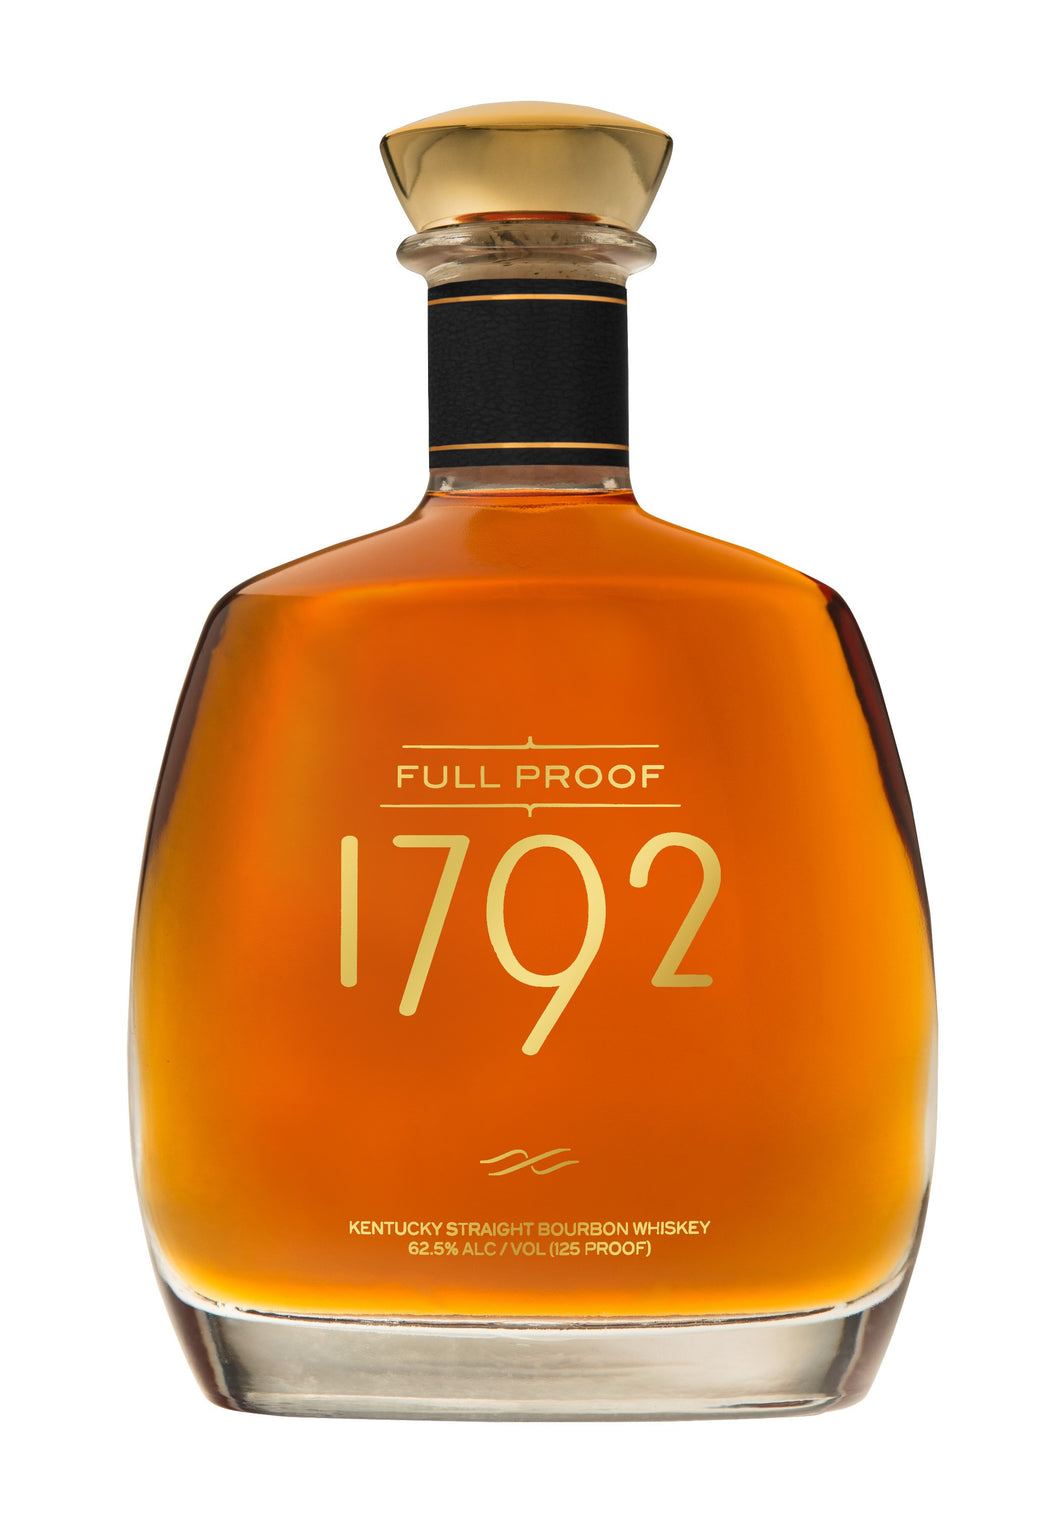 1792 Full Proof Kentucky Straight Bourbon Whiskey  (125 Proof) - Grapes & Hops Deli